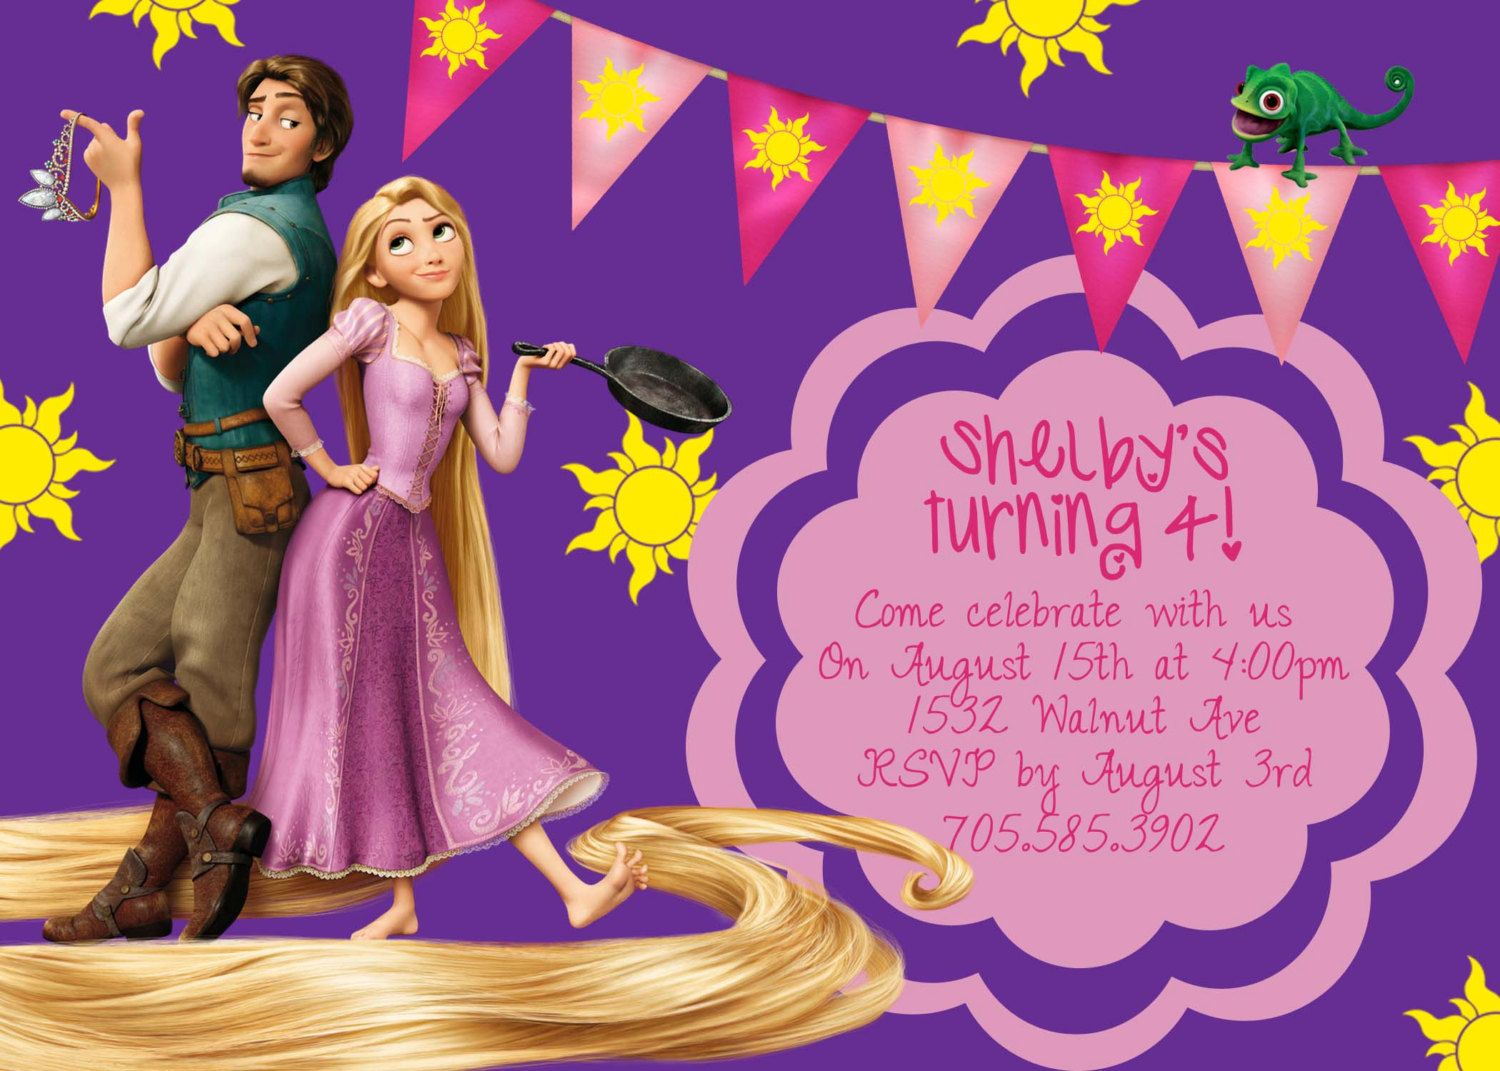 Pin by amber chavez on sydneys b day pinterest purple birthday tangled rapunzel purple birthday invite card can be personalized or customized invitation jpeg printable children holiday bookmarktalkfo Image collections